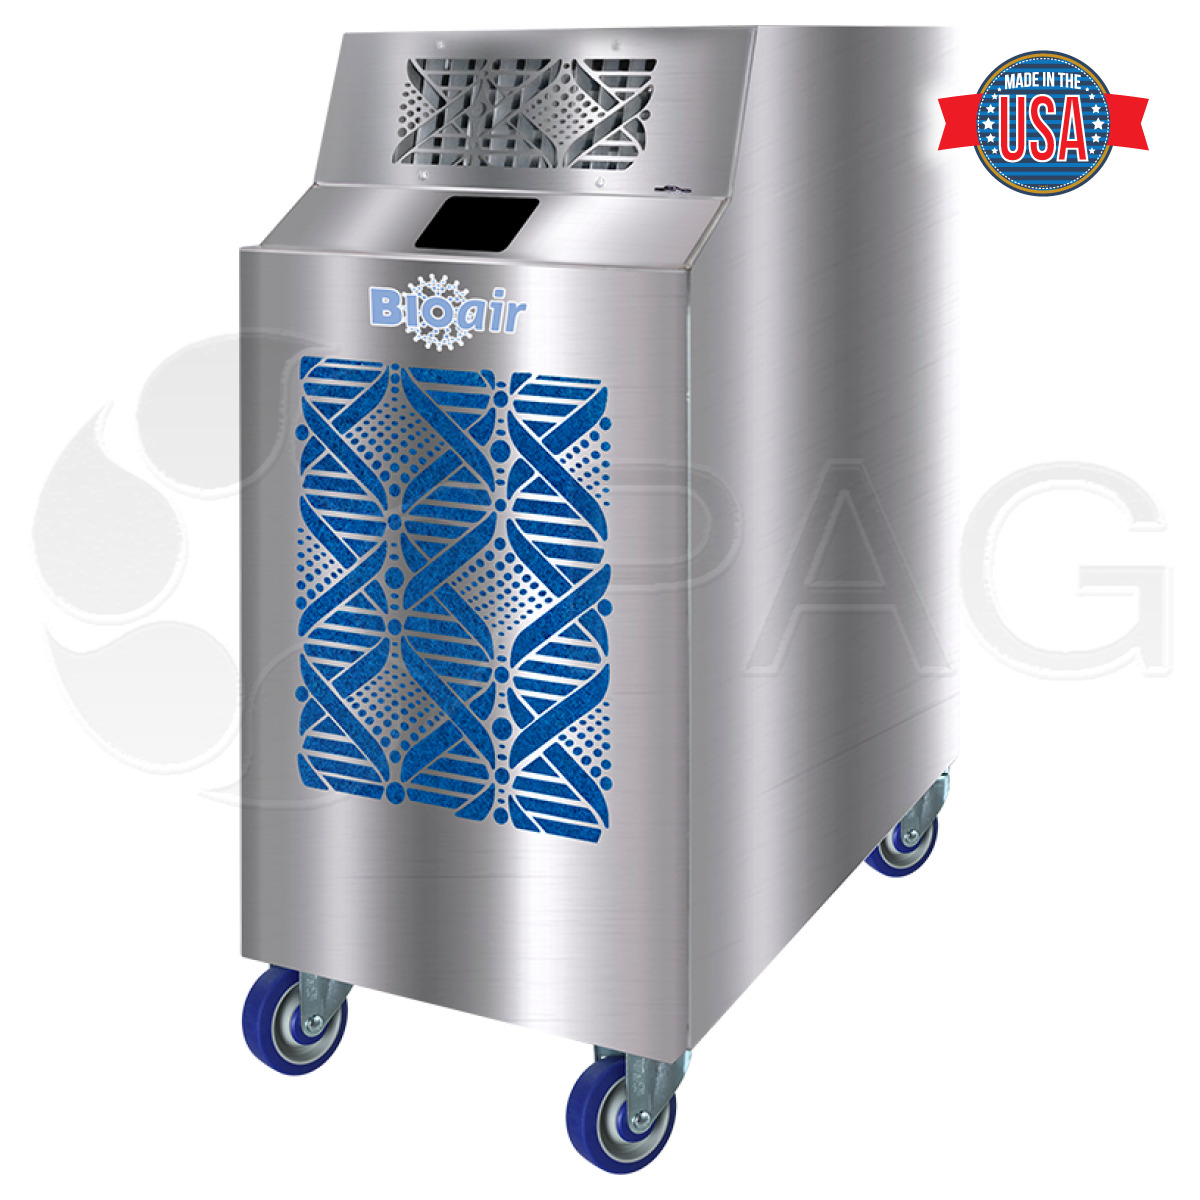 KwiKool Bioair 600 and 1000 CFM air scrubber